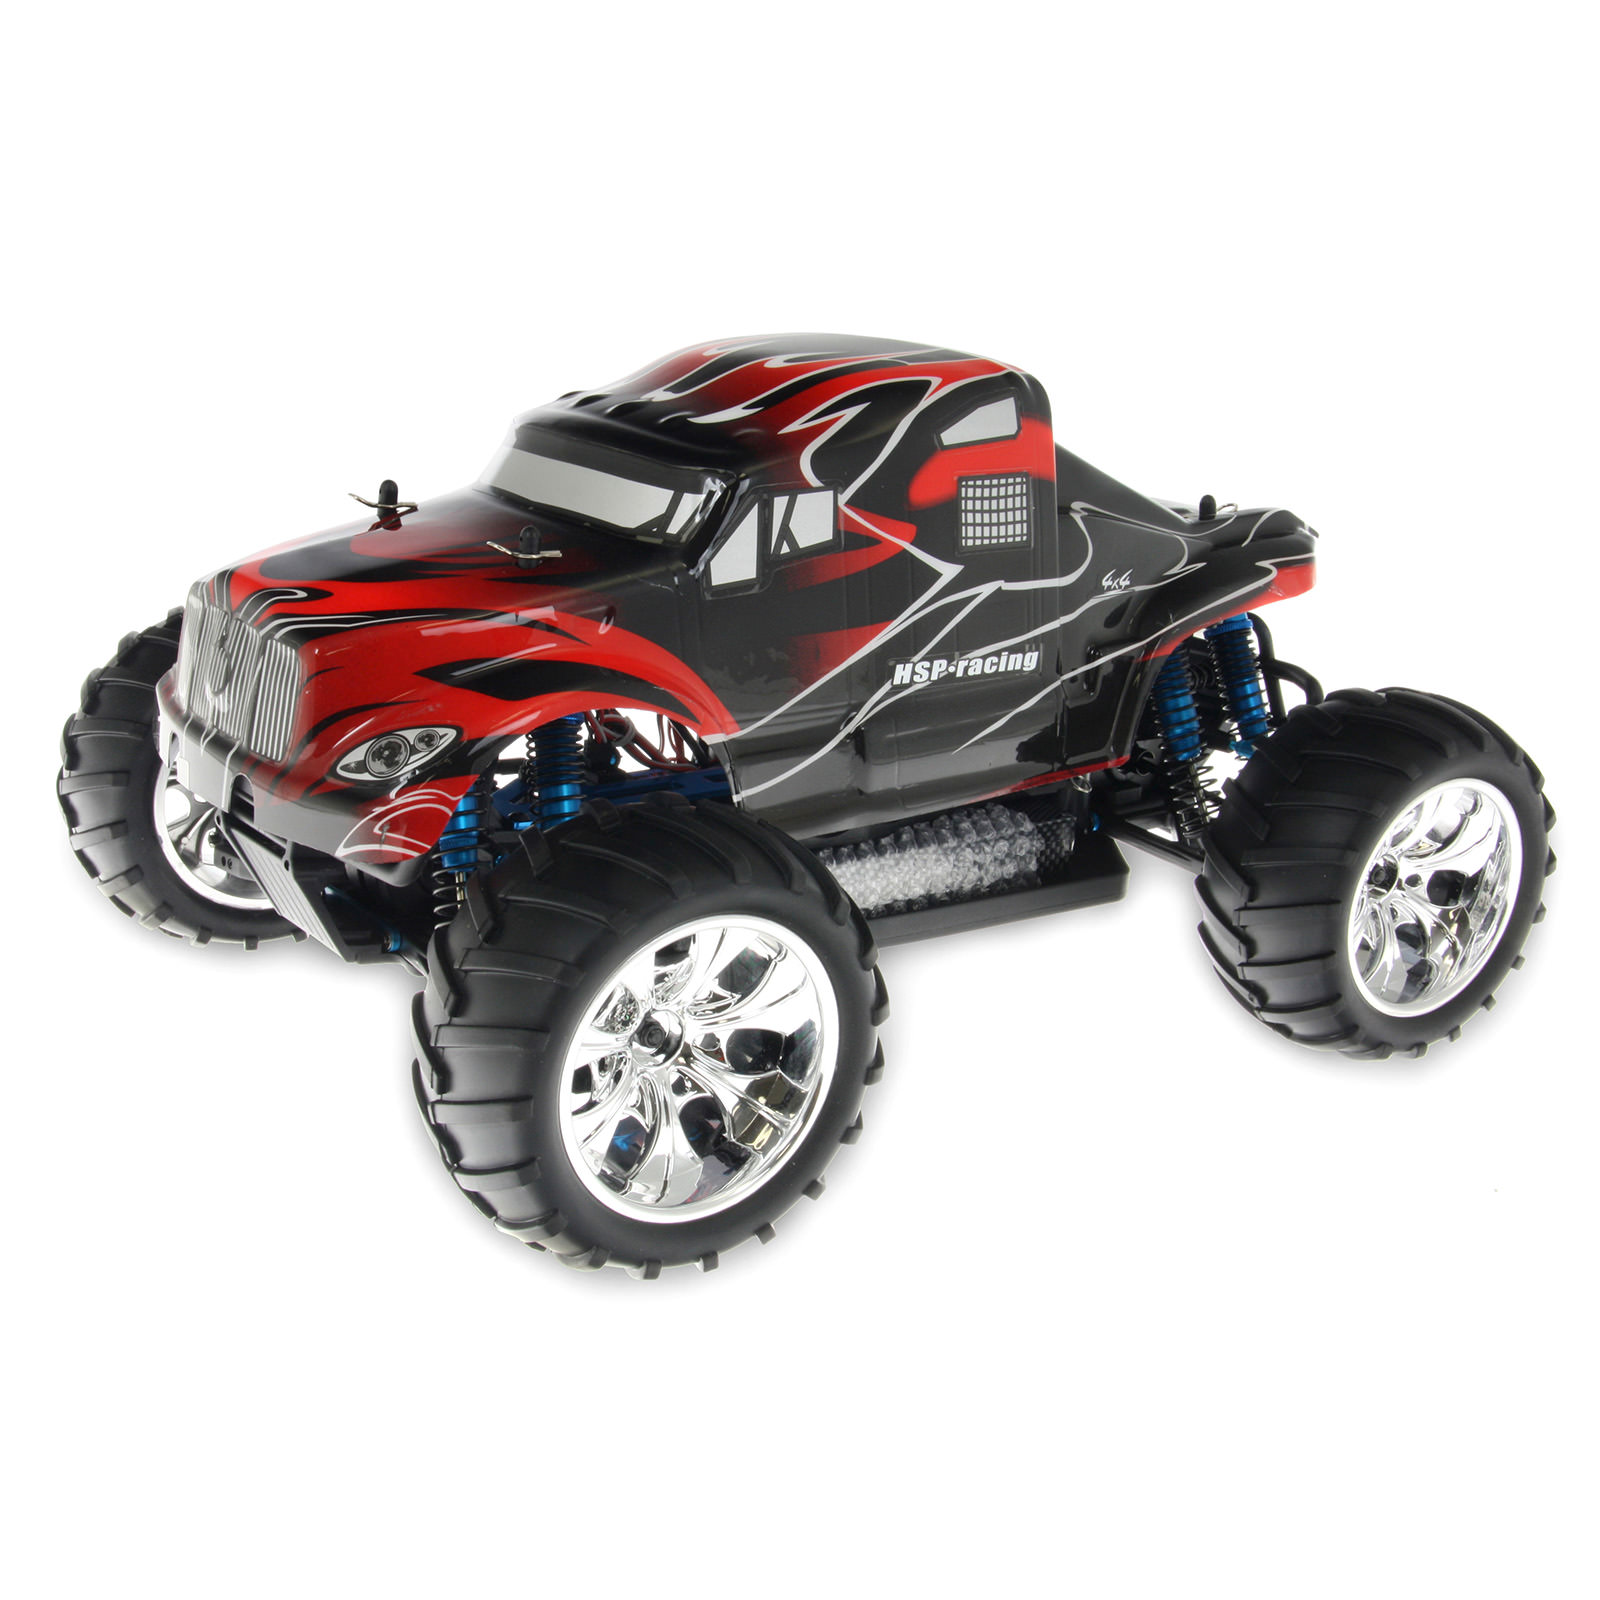 Hsp Rc Truck Nitro Gas Power Off Road Monster Truck 94188: HSP 94111TOP-11V-88033 Black RC Monster Truck At Hobby